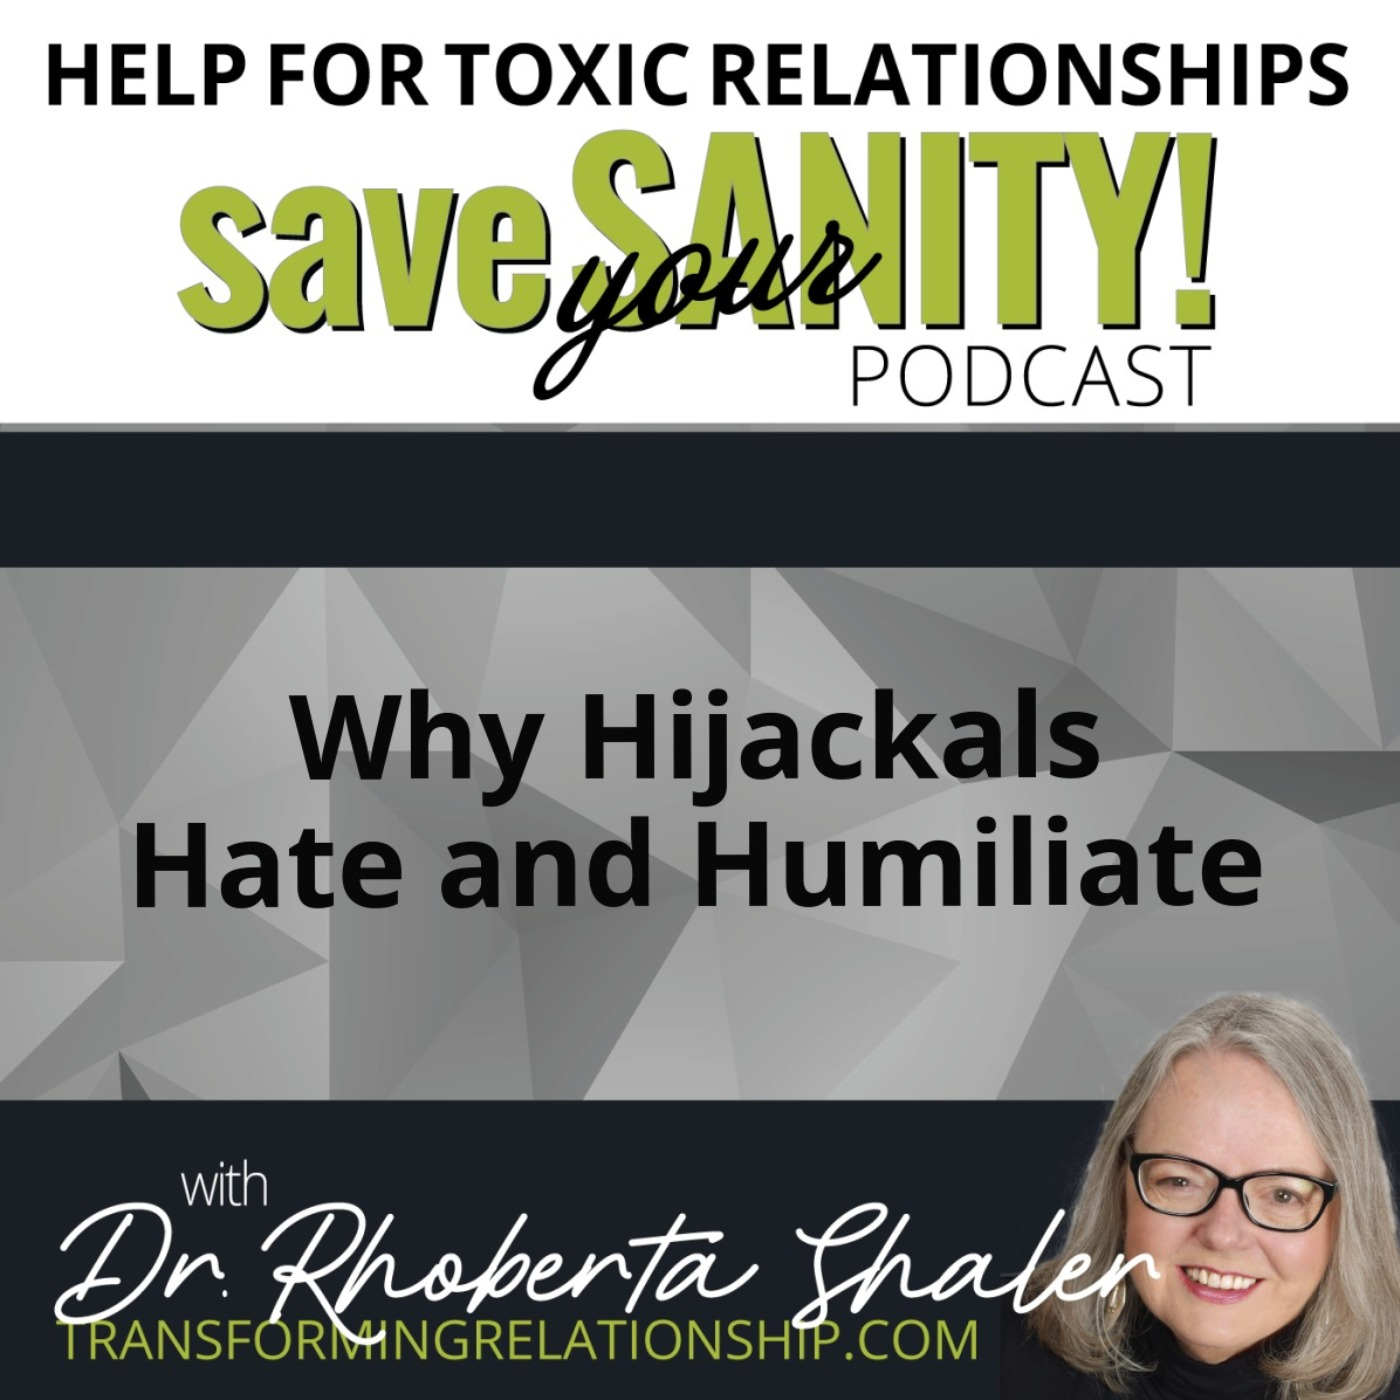 Why Hijackals Hate and Humiliate - Dr. Rhoberta Shaler